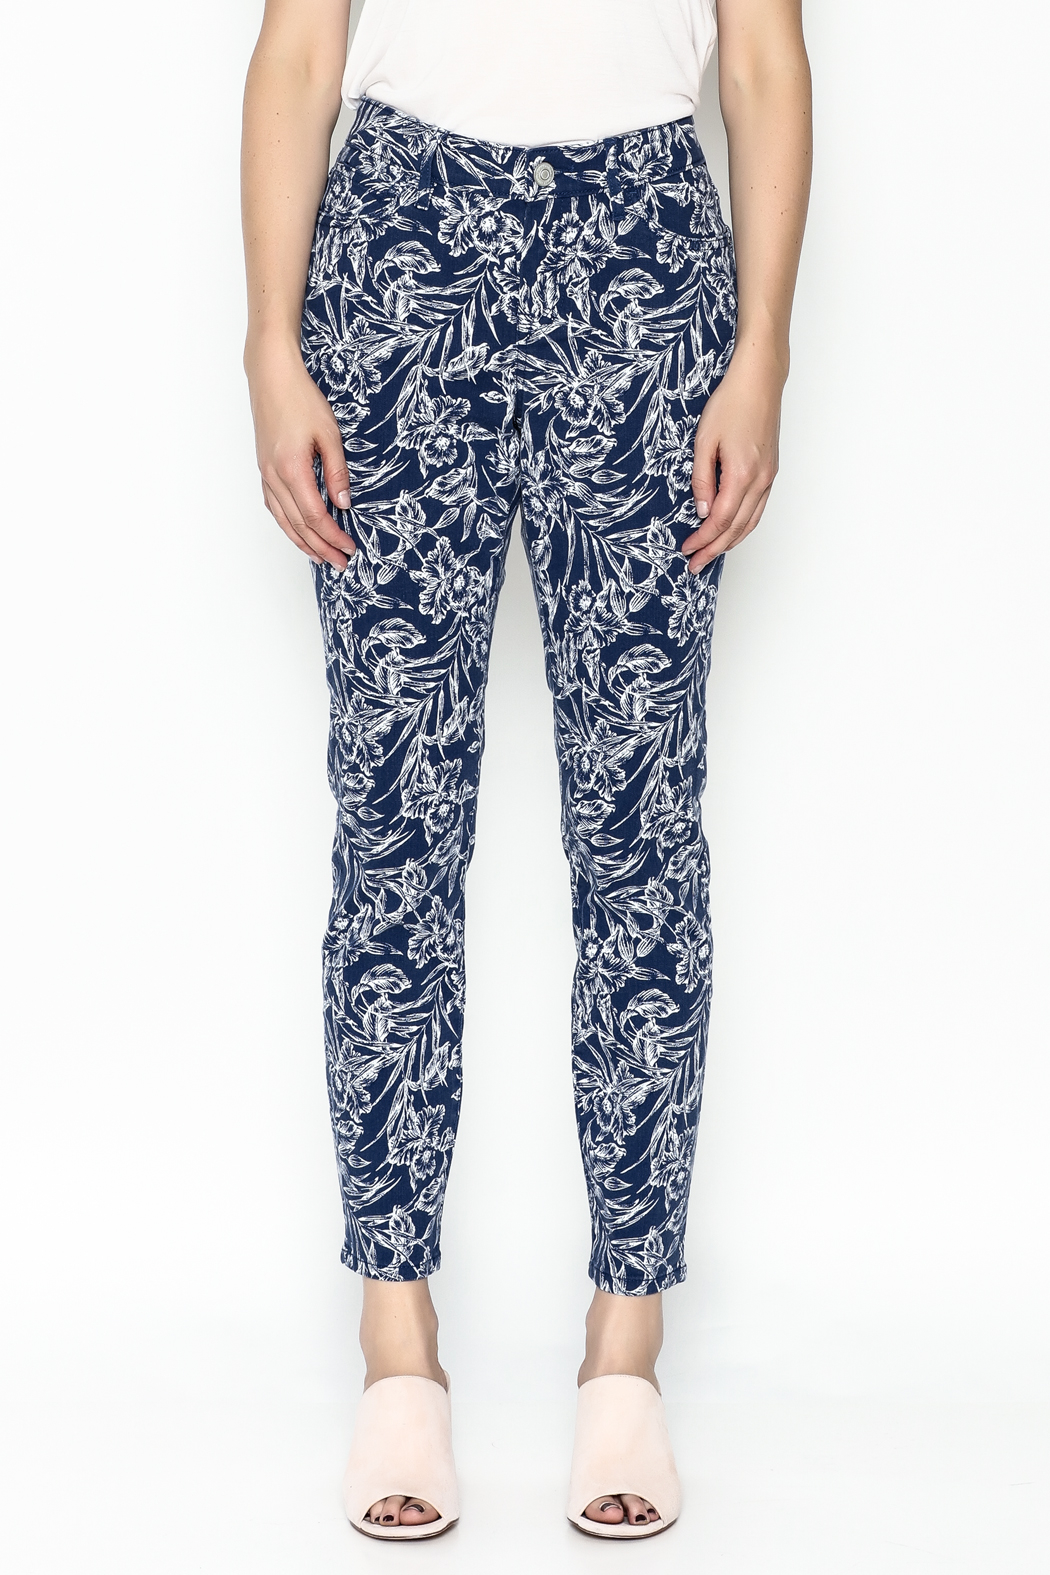 Tommy Bahama Hibiscus Print Jeans - Front Full Image